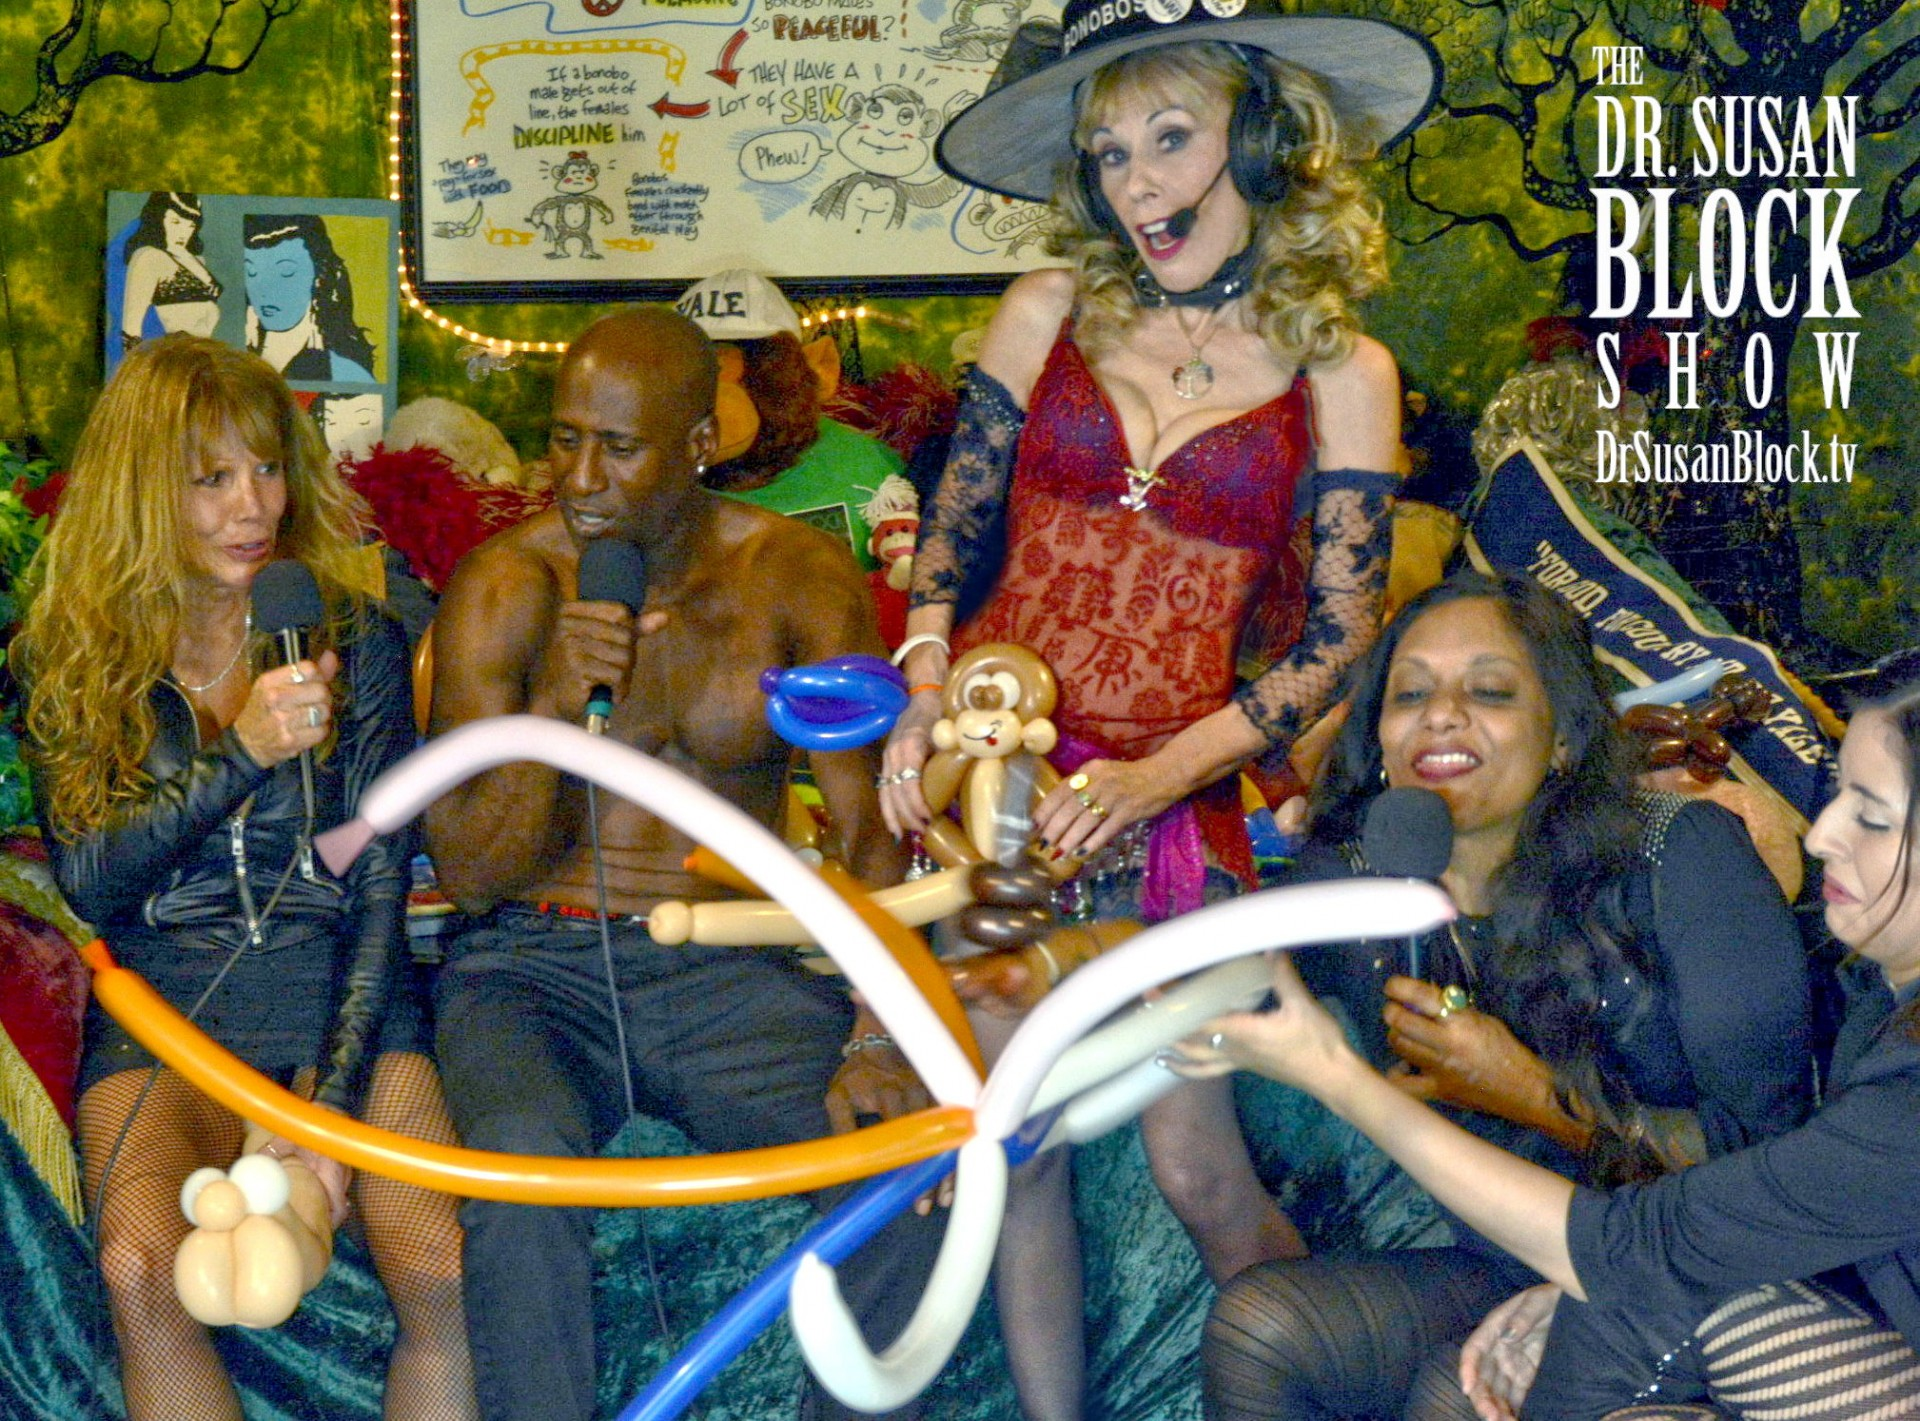 11/11, Bonobo-Style: Christine Dupree, Ikkor the Wolf, Dr. Suzy,  Moushumi Ghose, Rayna Bonobo with, Damion Tong's Big Burlesque Balloon. Photo: Who is Big Mac